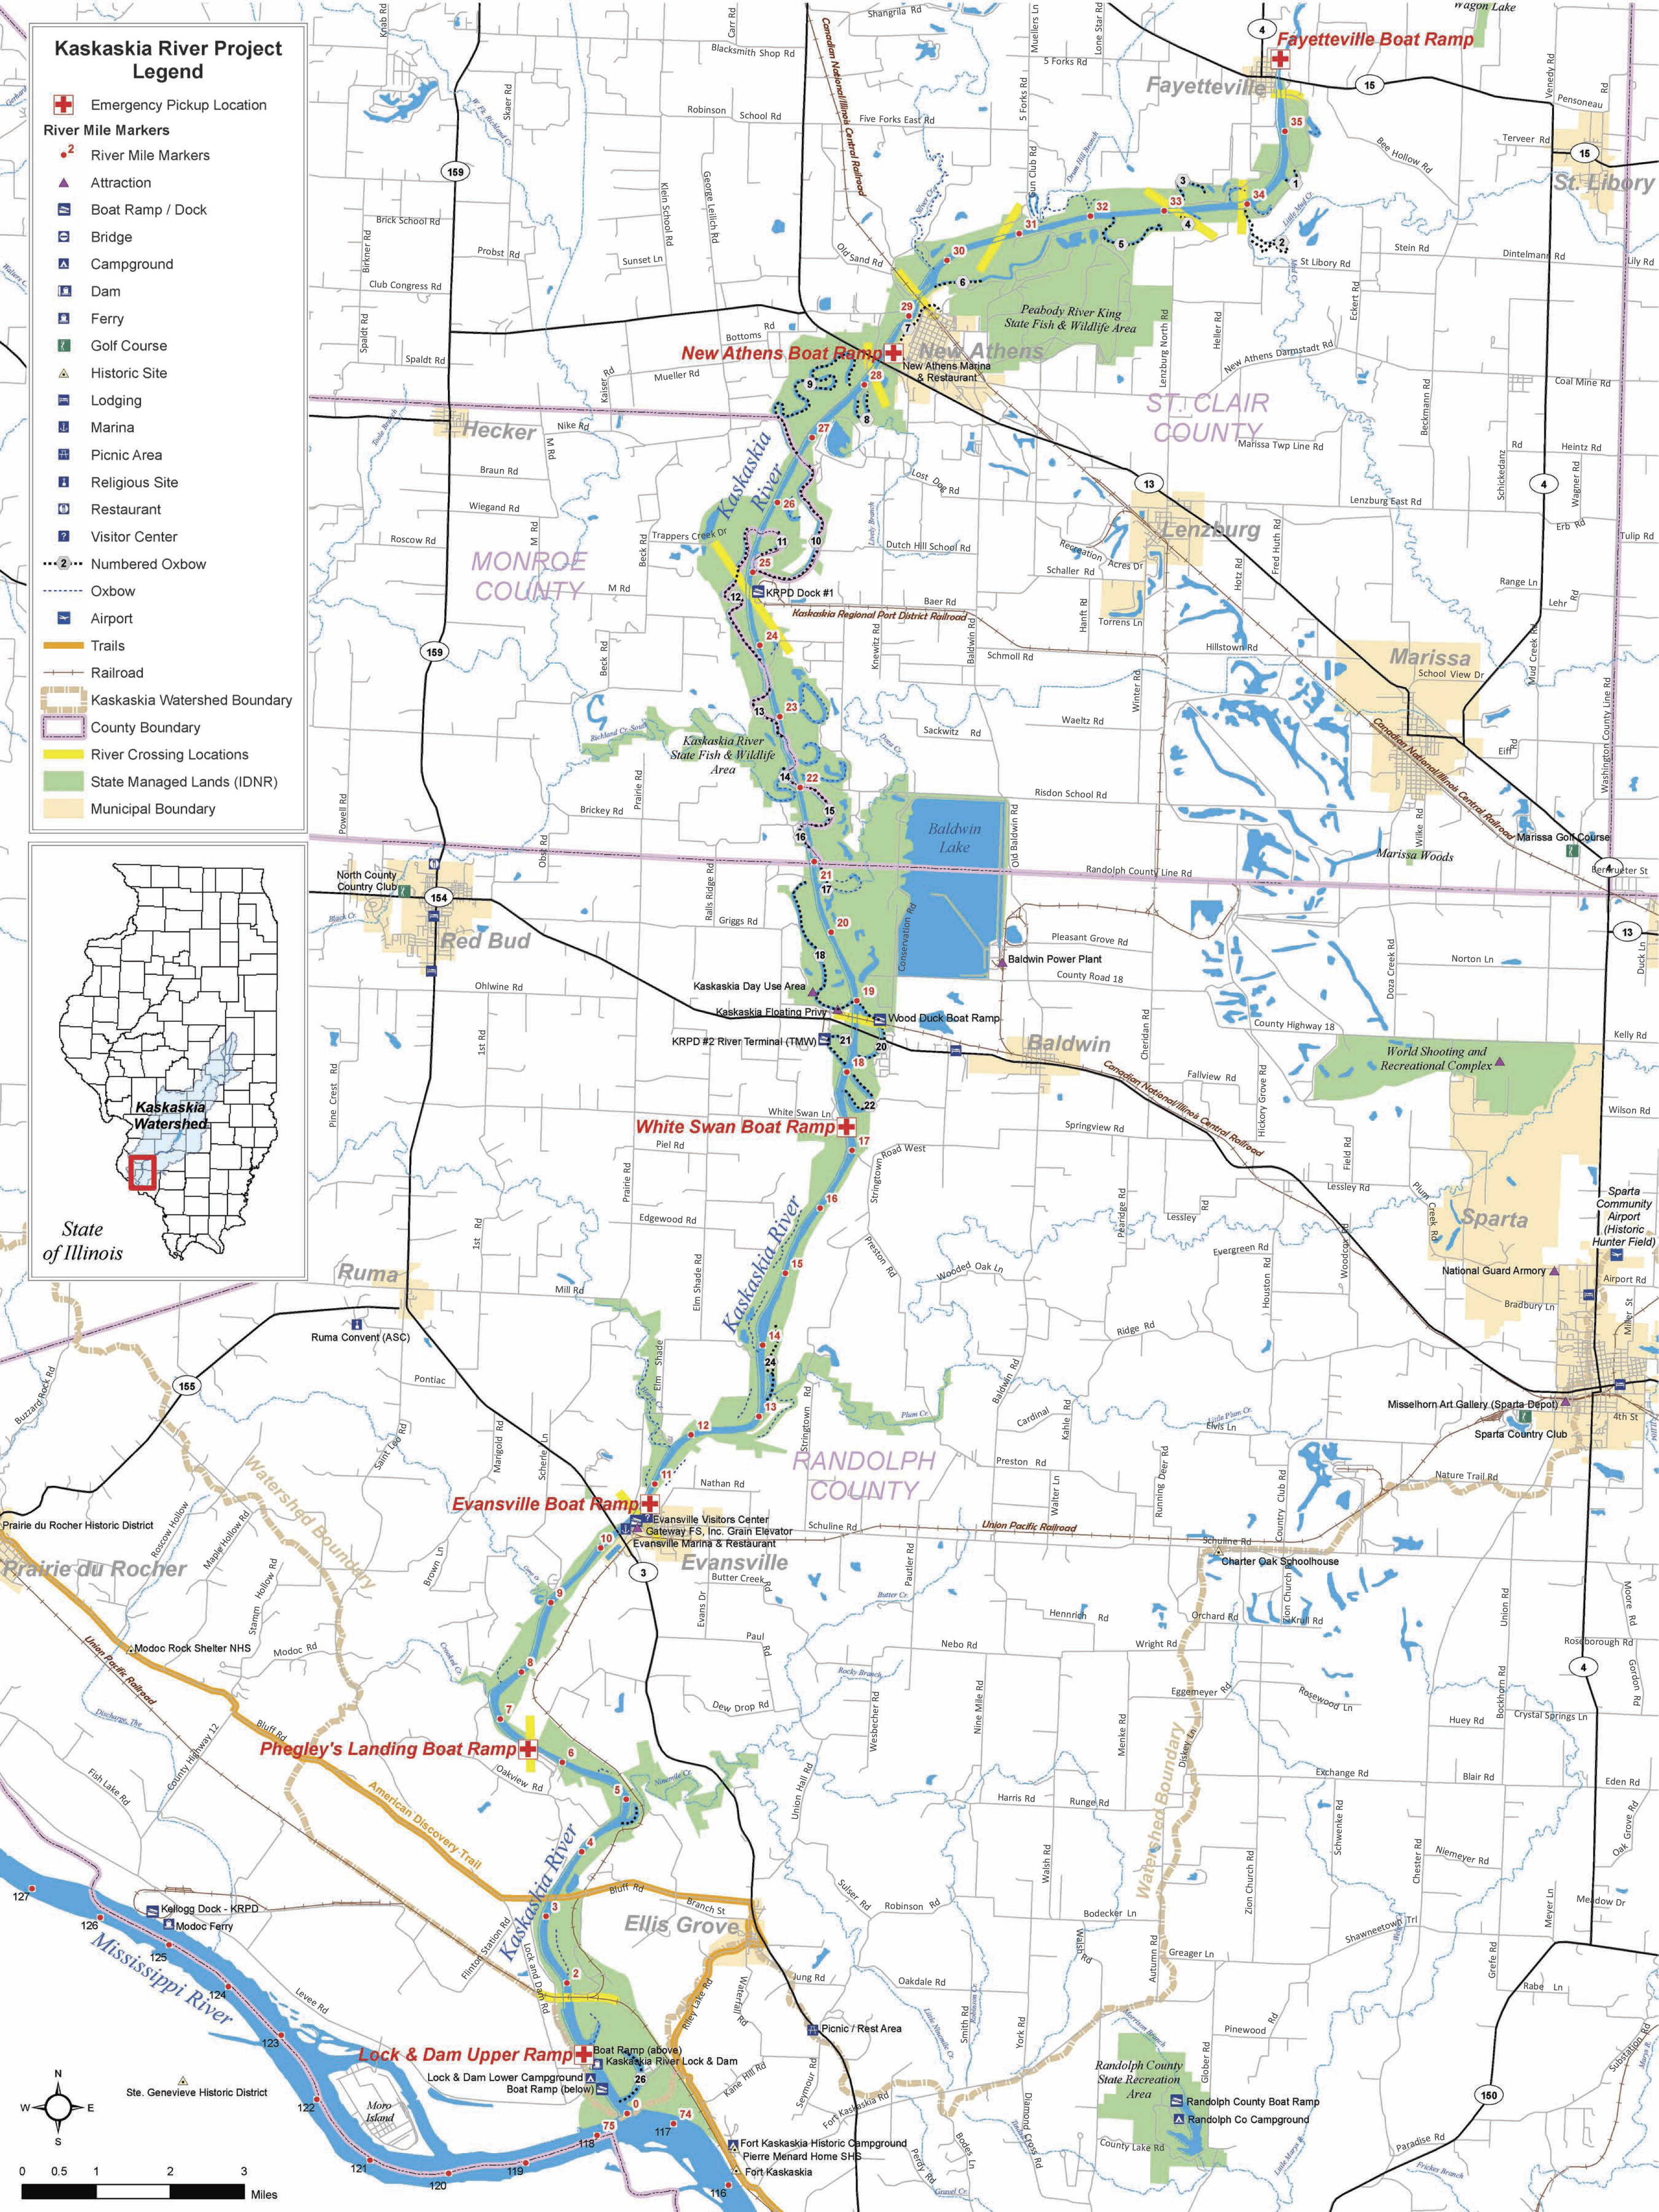 Evansville Illinois Map.St Louis District Missions Recreation Kaskaskia River Project